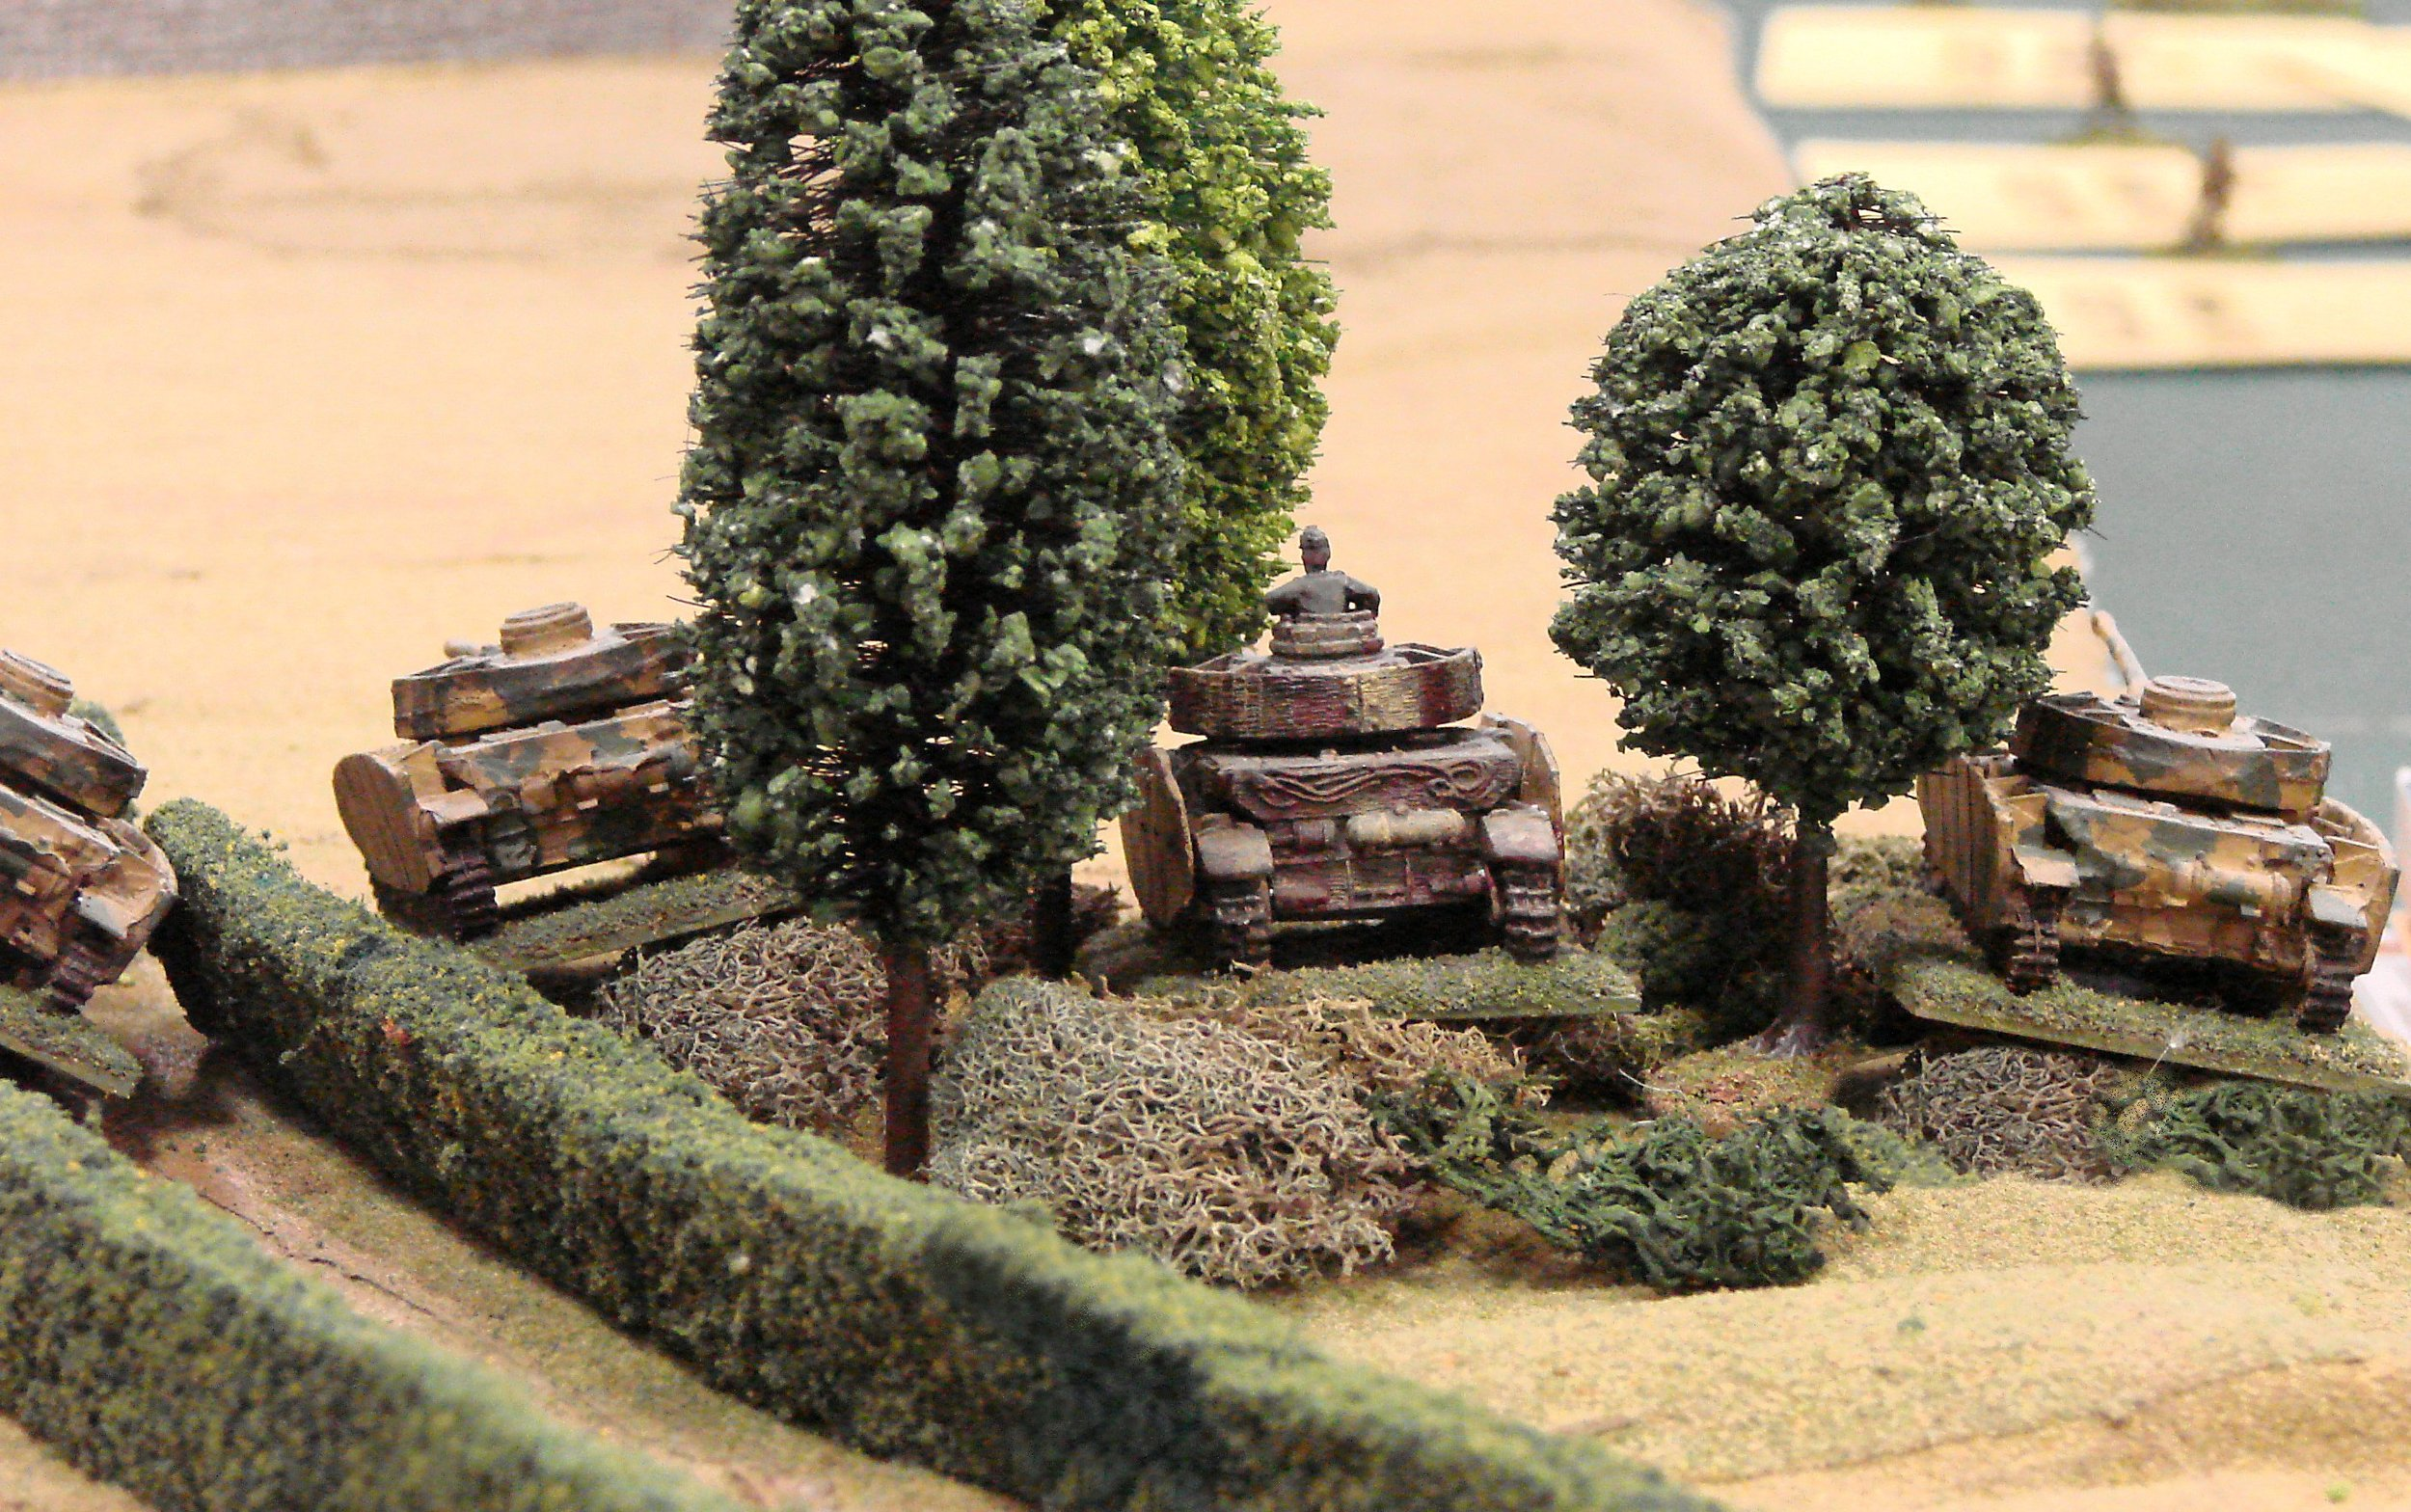 The remaining three Panzers scramble into the woods, bypassing the disabled tank.